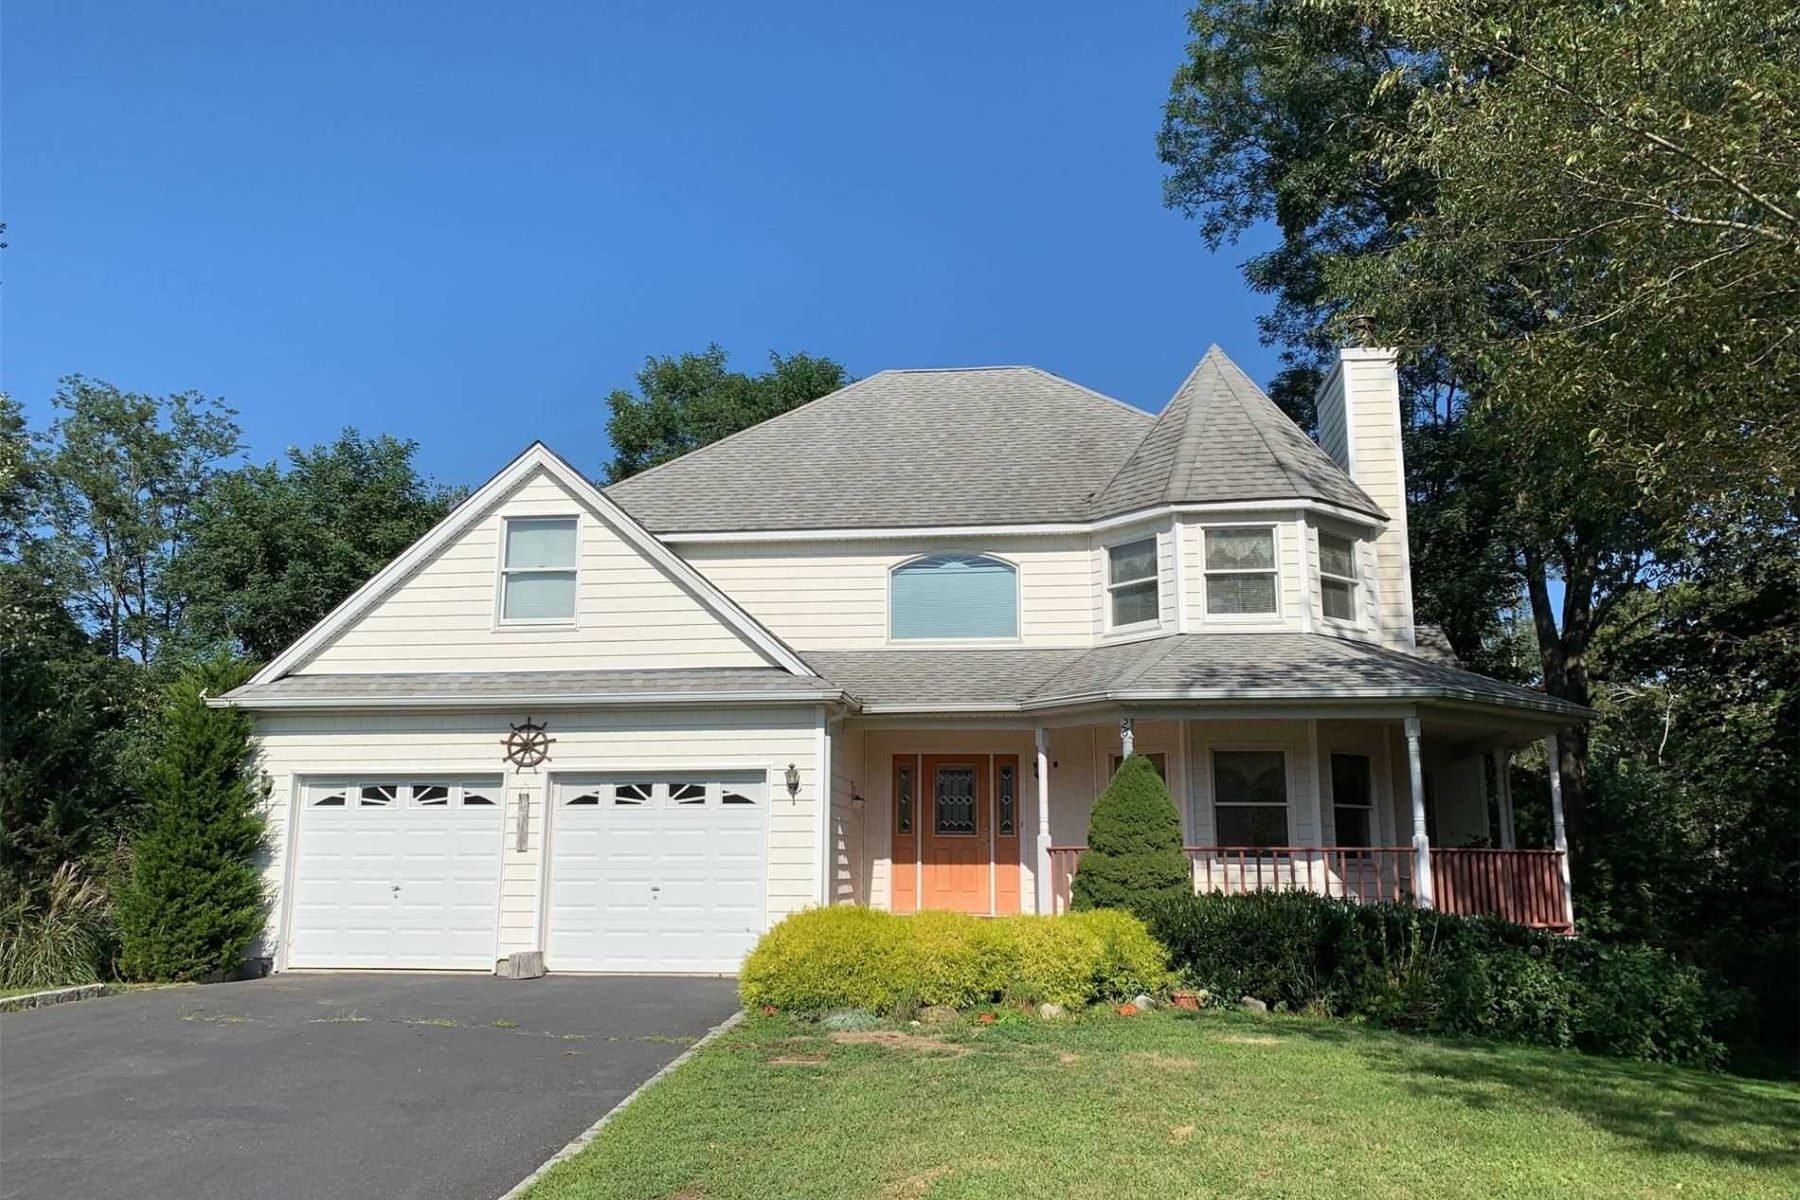 Single Family Homes for Sale at Jamesport 26 Seacove Ln Jamesport, New York 11947 United States